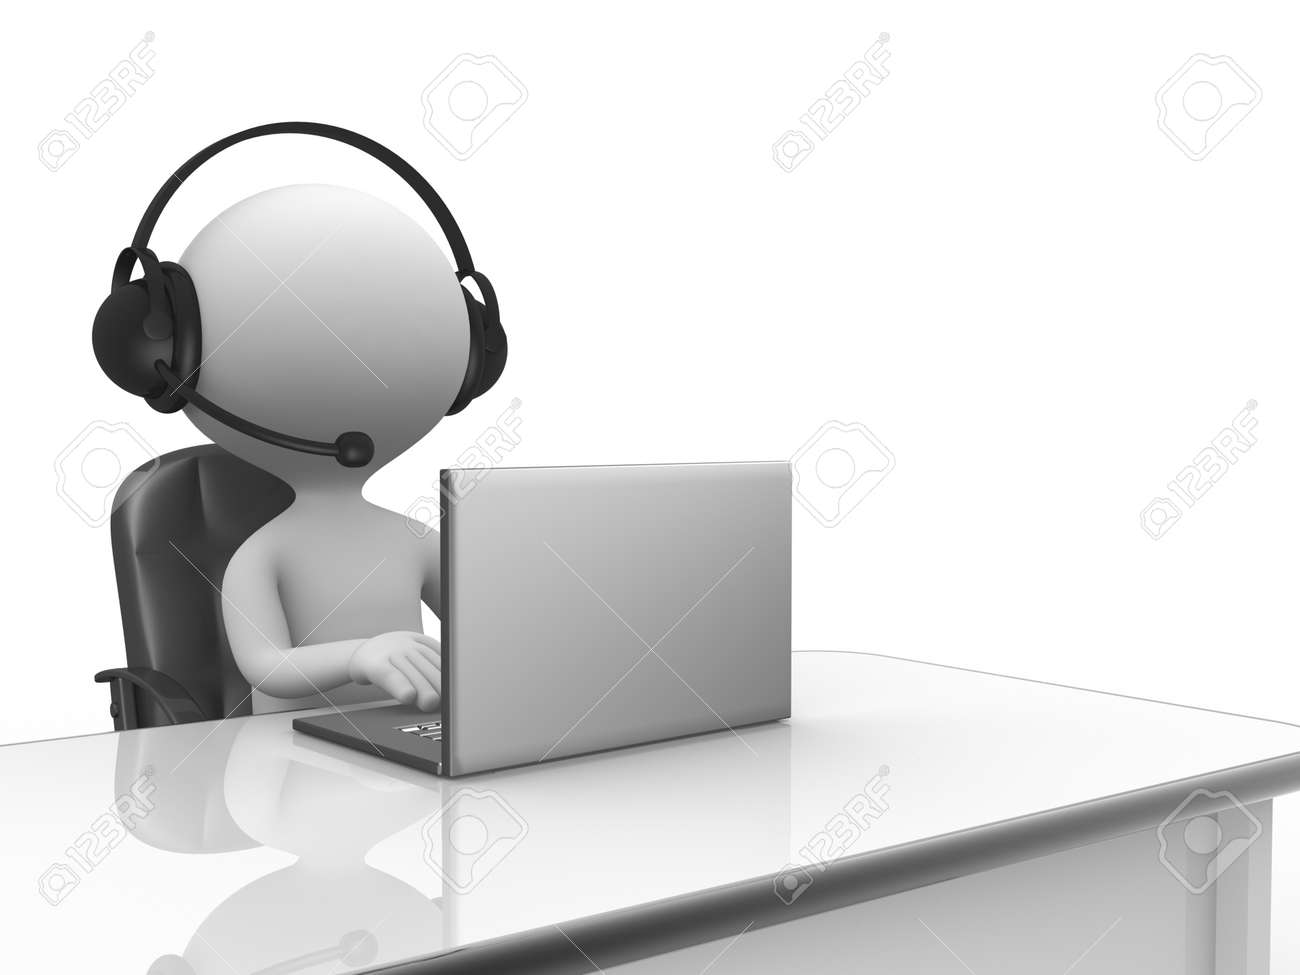 3d people - man, person with a Headphones with Microphone and laptop. Stock Photo - 24836606